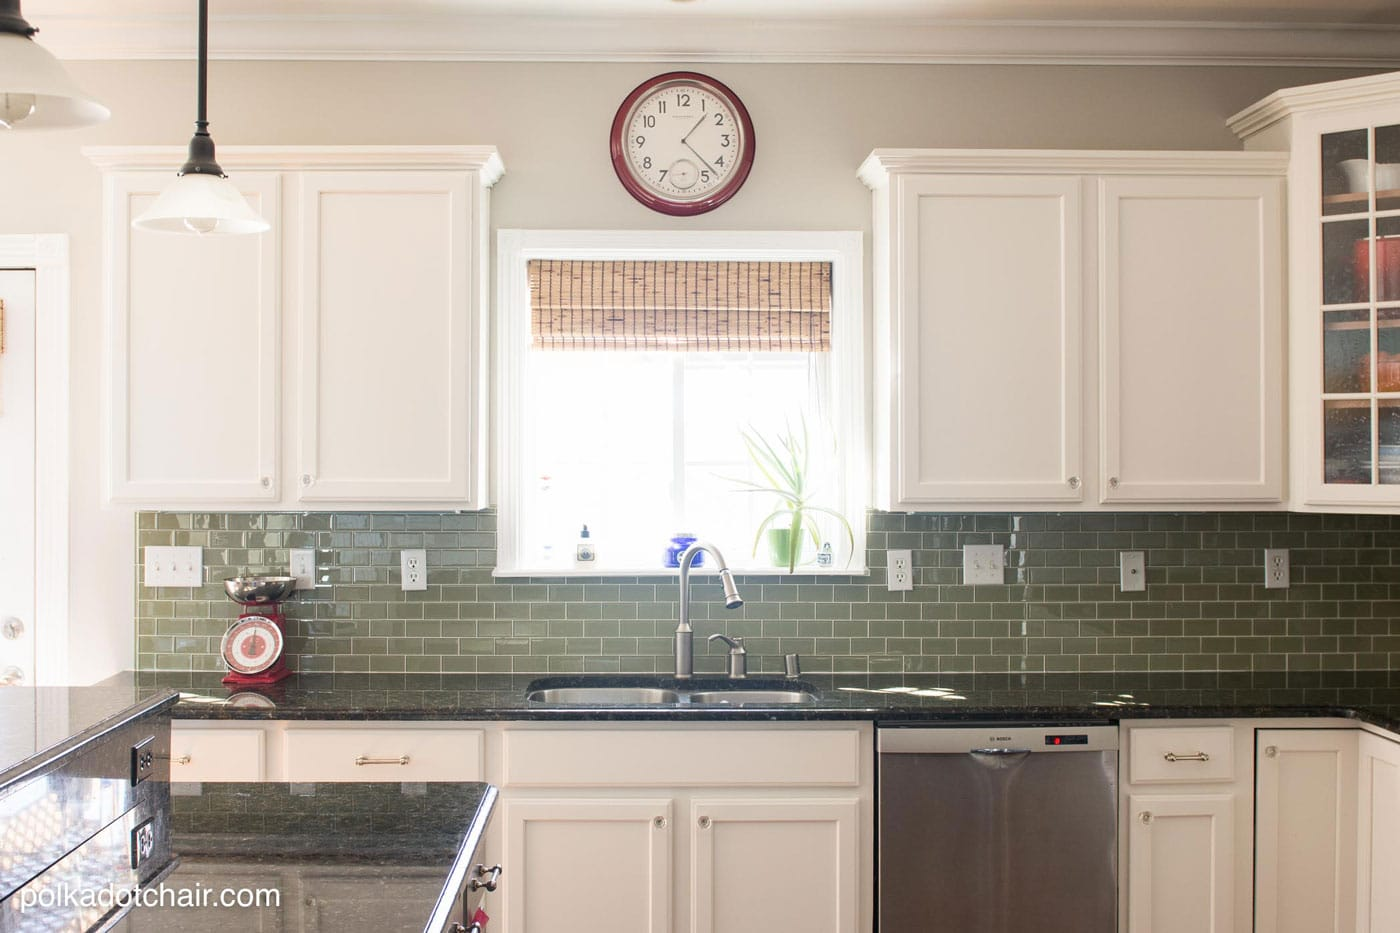 Images Of Painted Kitchen Cabinets Painted Kitchen Cabinet Ideas And Kitchen Makeover Reveal The